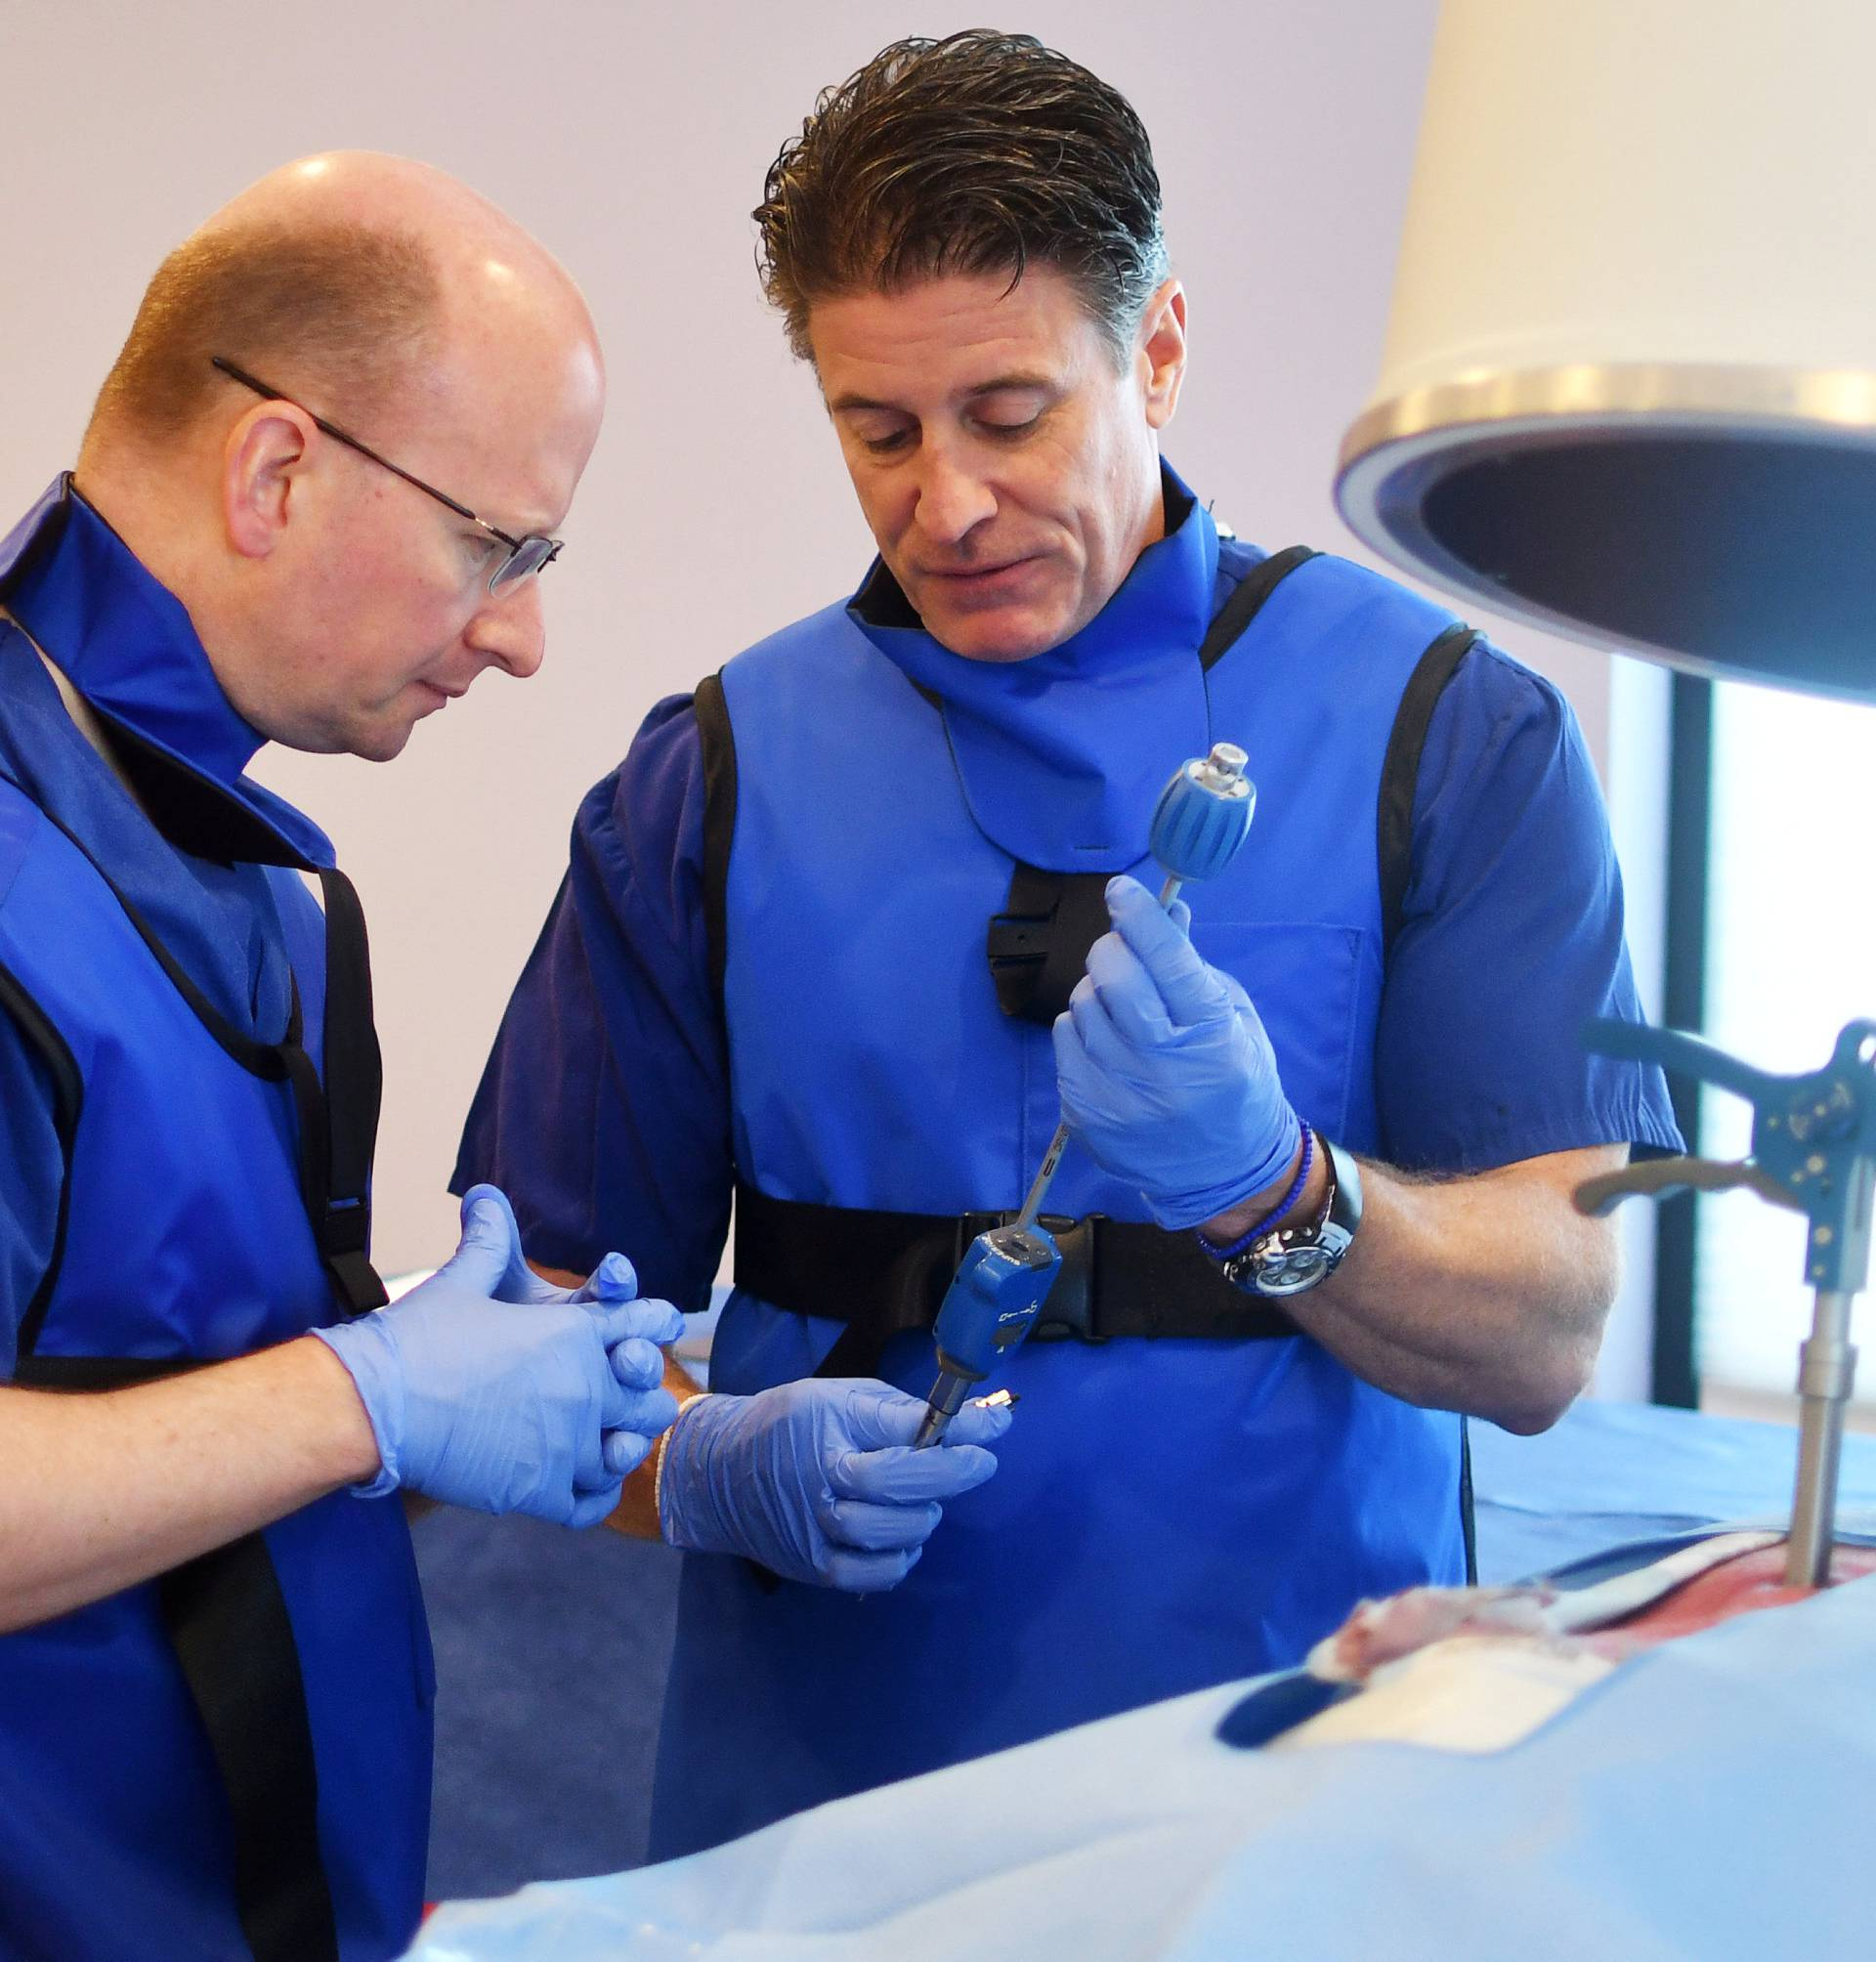 Drew Gaworski, an instructor for medical device maker Vertiflex, uses a donated human spine to teach Dr. Richard Stayner, (L), how to implant a device during a seminar in Sterling